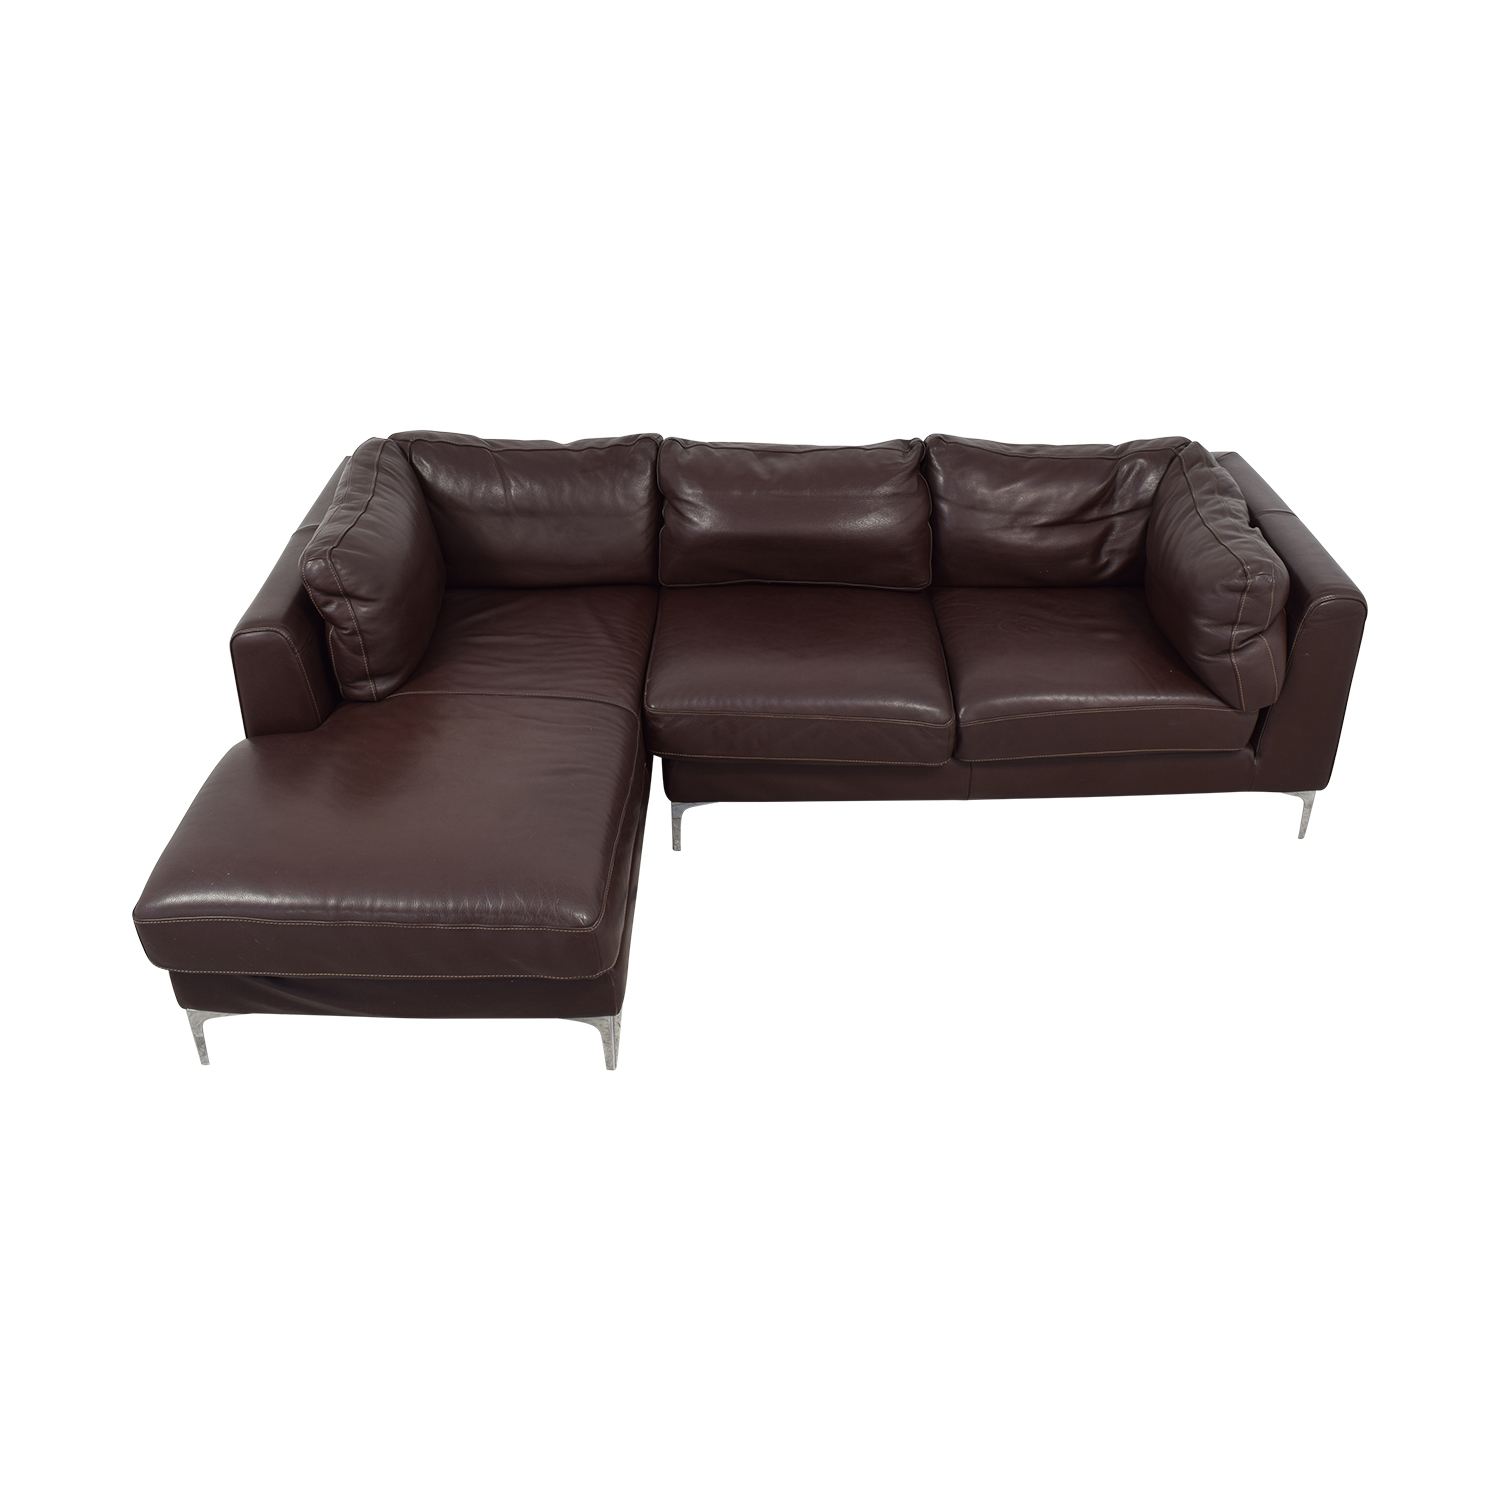 Design Within Reach Design Within Reach Nicoletti Chaise Sectional Sofa second hand